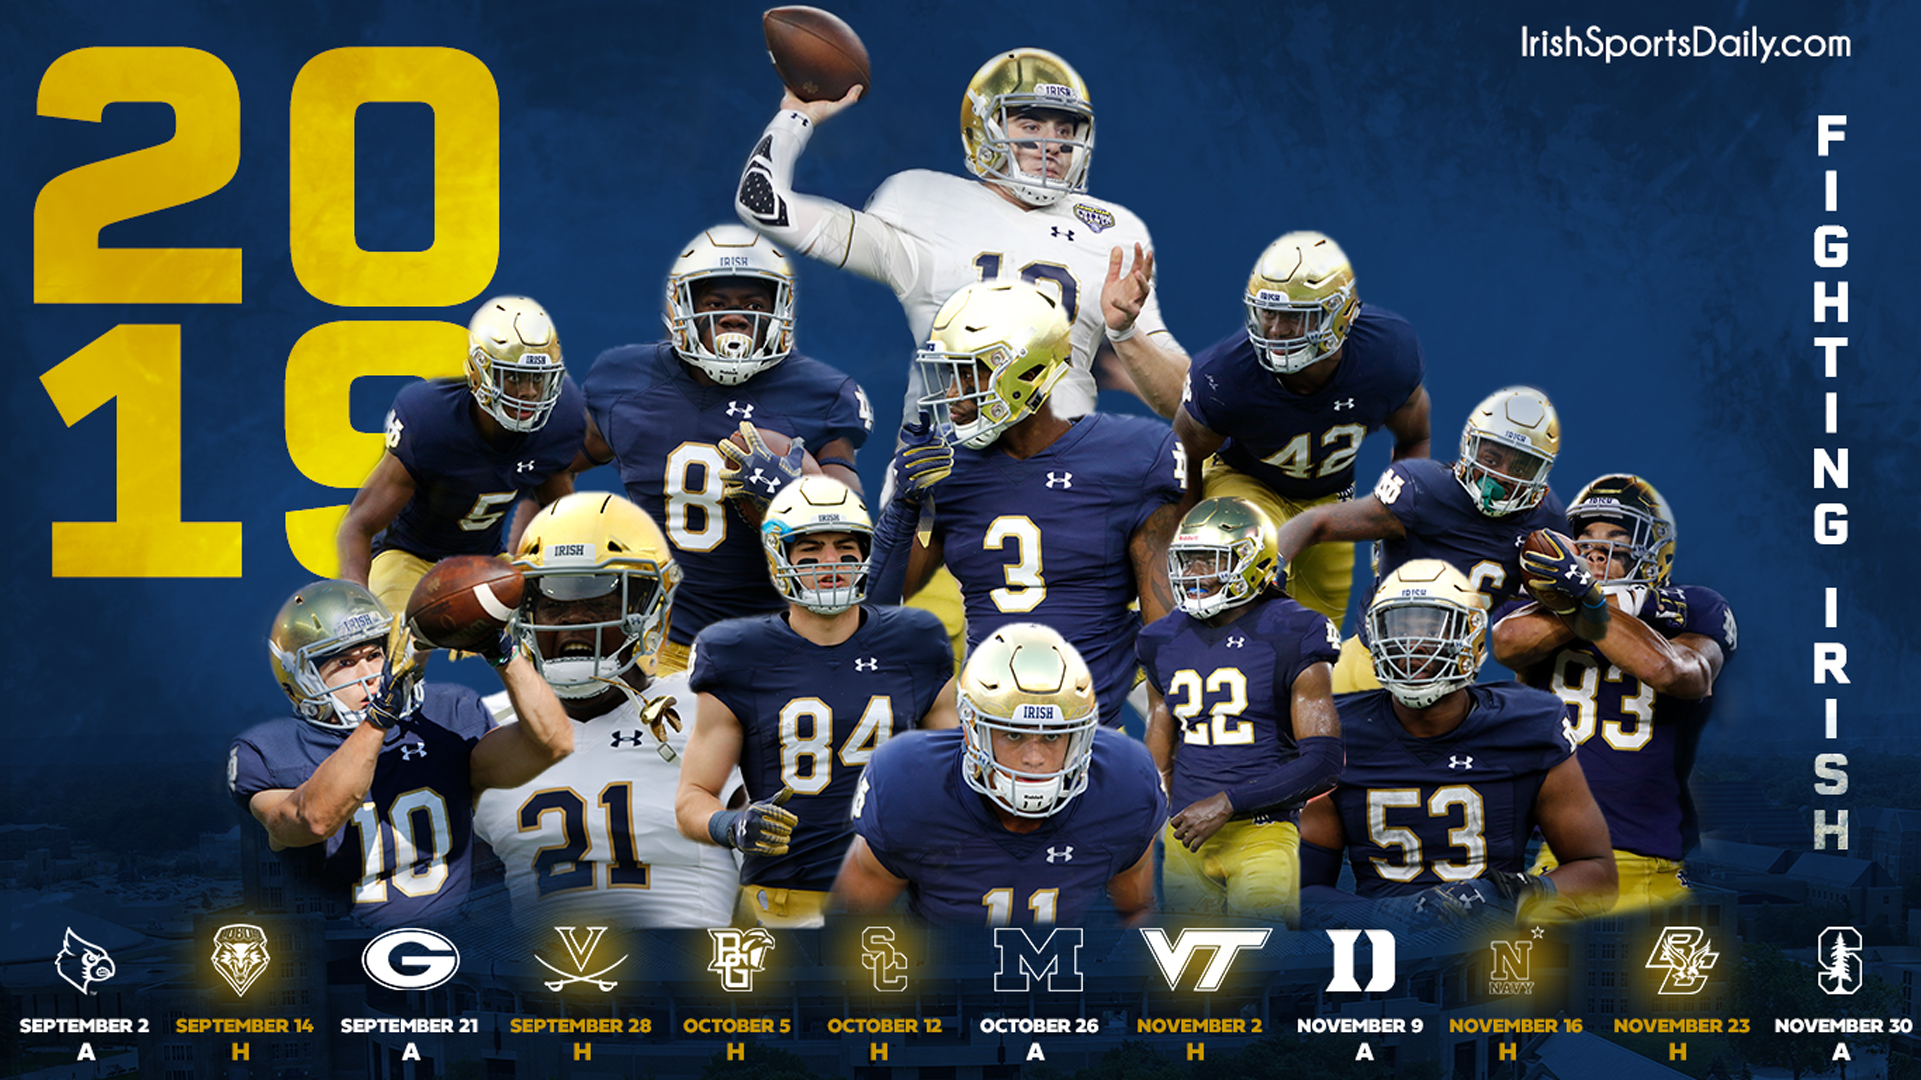 2019 Notre Dame Football Schedule Wallpaper | 2019 Notre Dame Football Schedule | Irish Sports Daily